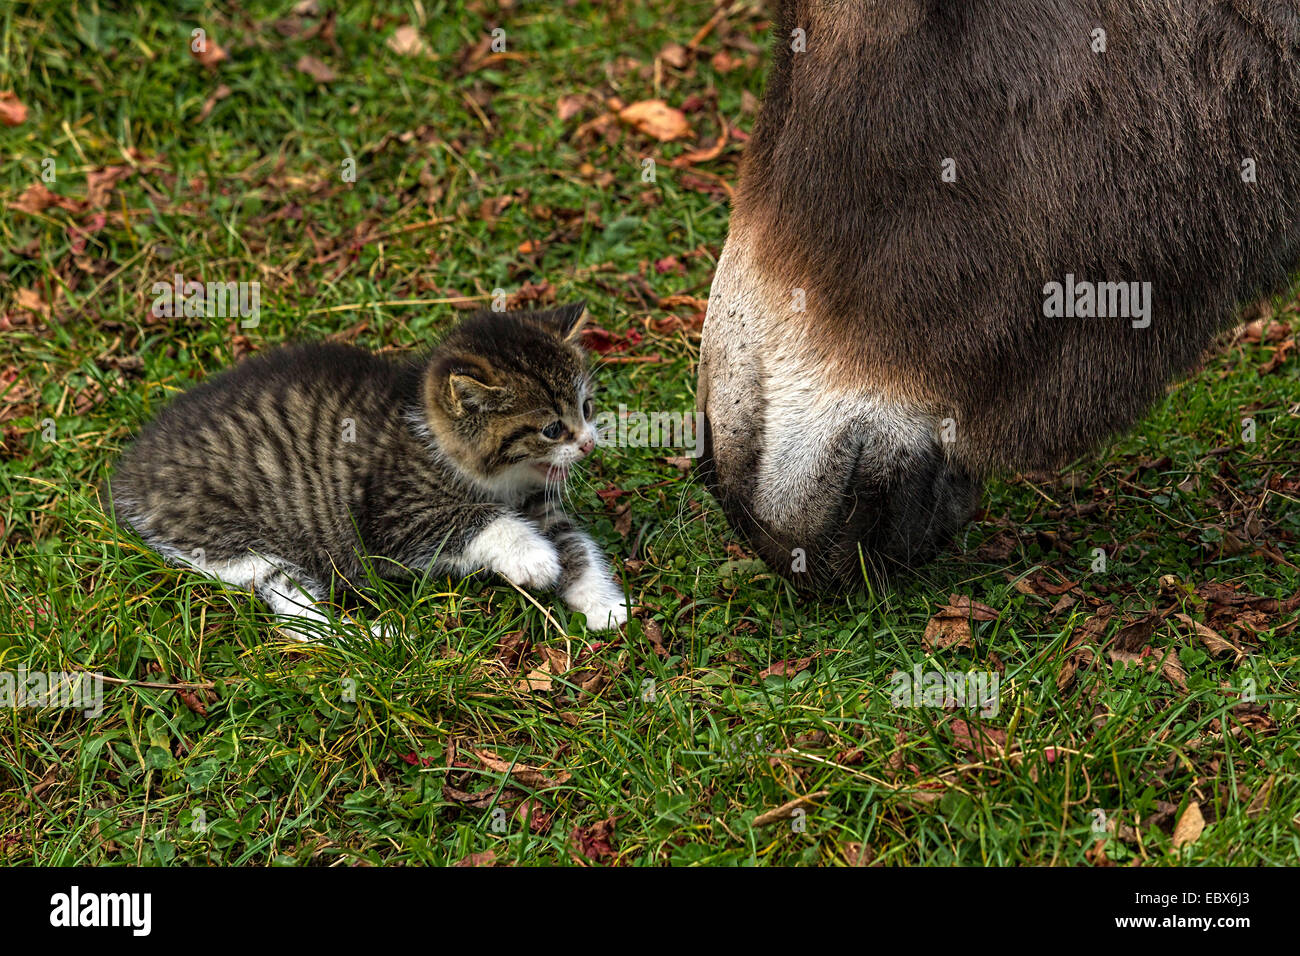 Kitten snarling at  Donkey on grass field - Stock Image